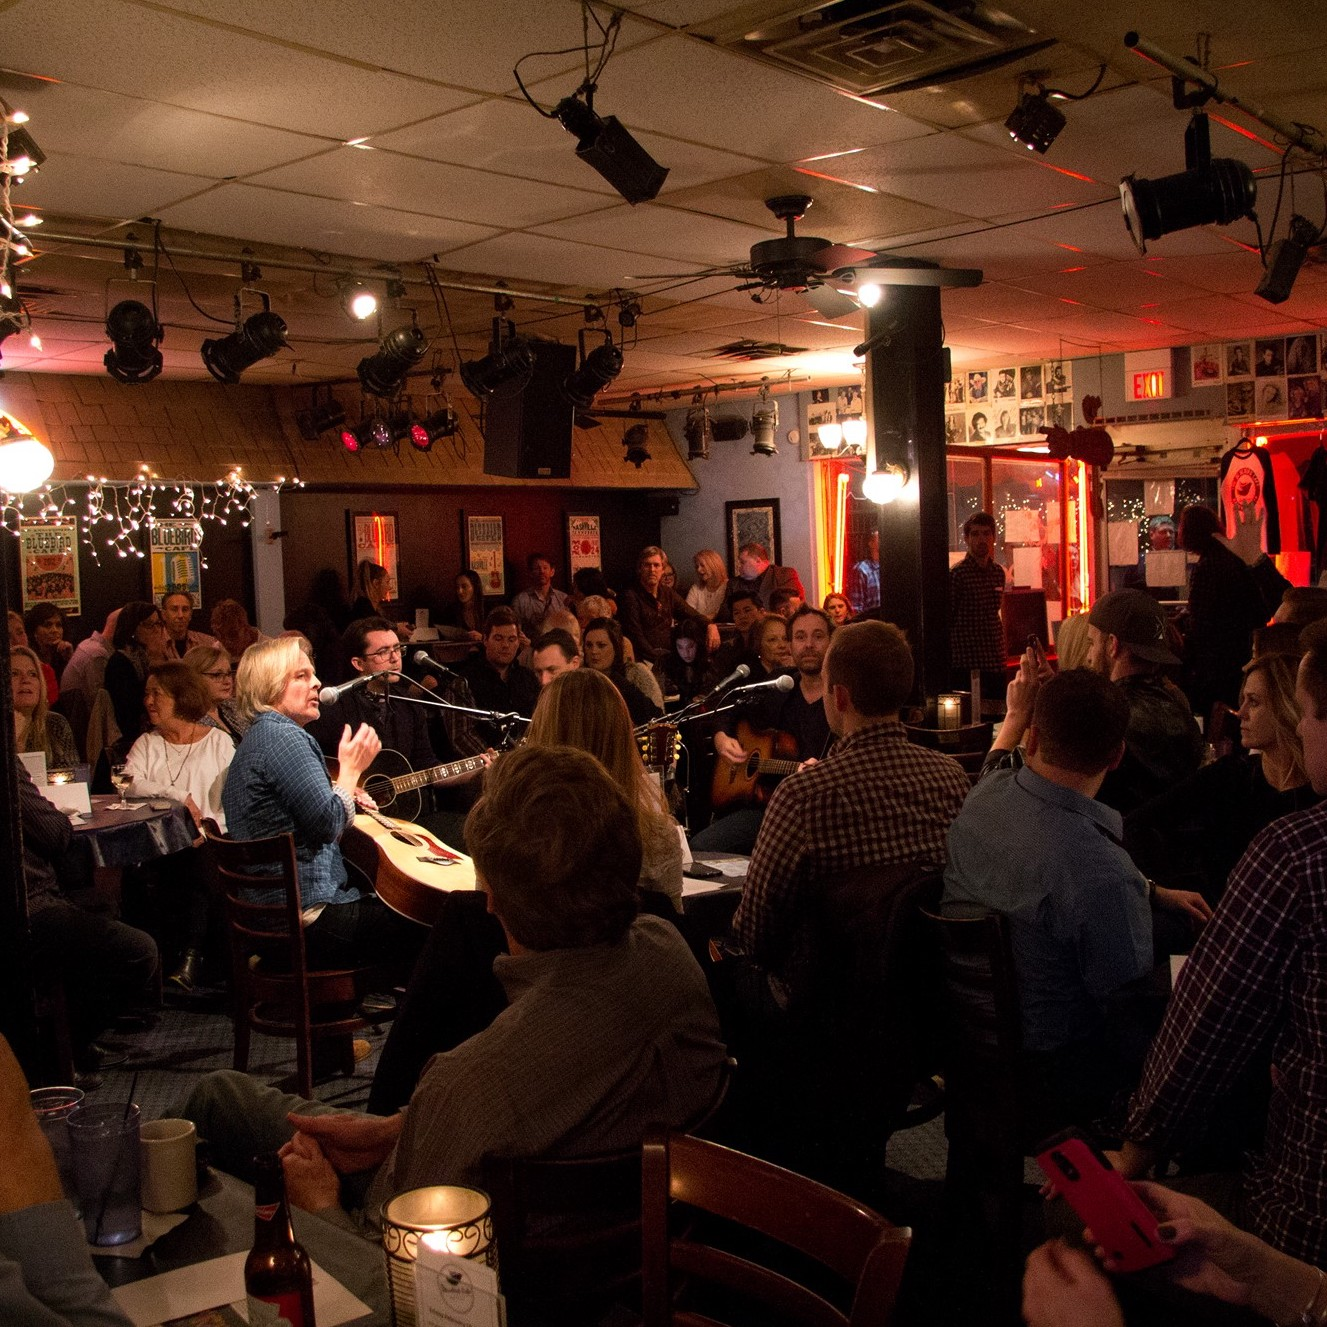 The Bluebird Cafe - Neighborhood:Green HillsIf you watch the show Nashvillethen you know about The Bluebird Cafe. Thanks to the show, it's a lot harder to get tickets these days - but still an iconic Nashville venue.Photo Credit: The Bluebird Cafe Facebook Page